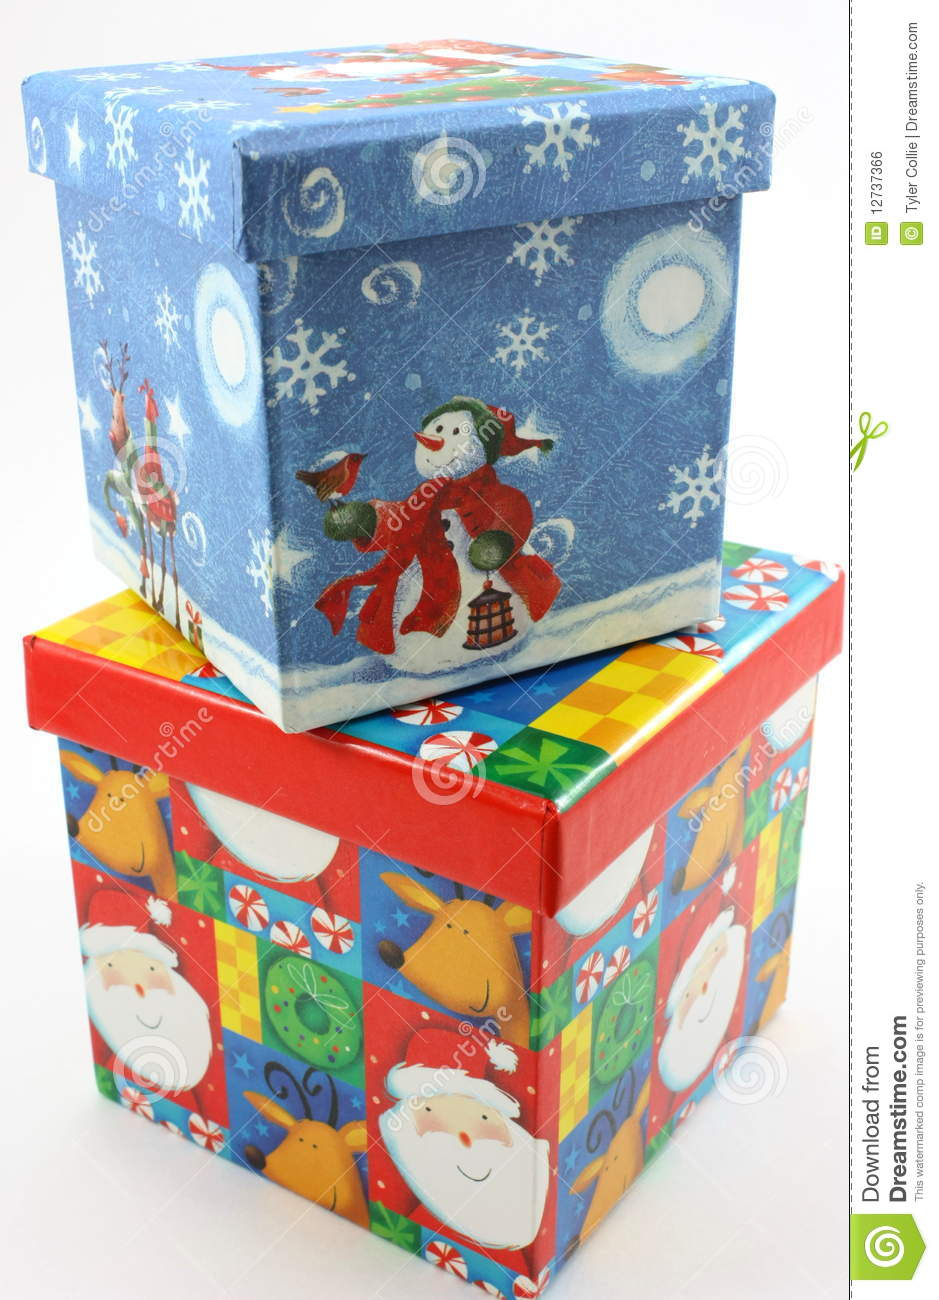 Christmas gift boxes blue and red stacked royalty free